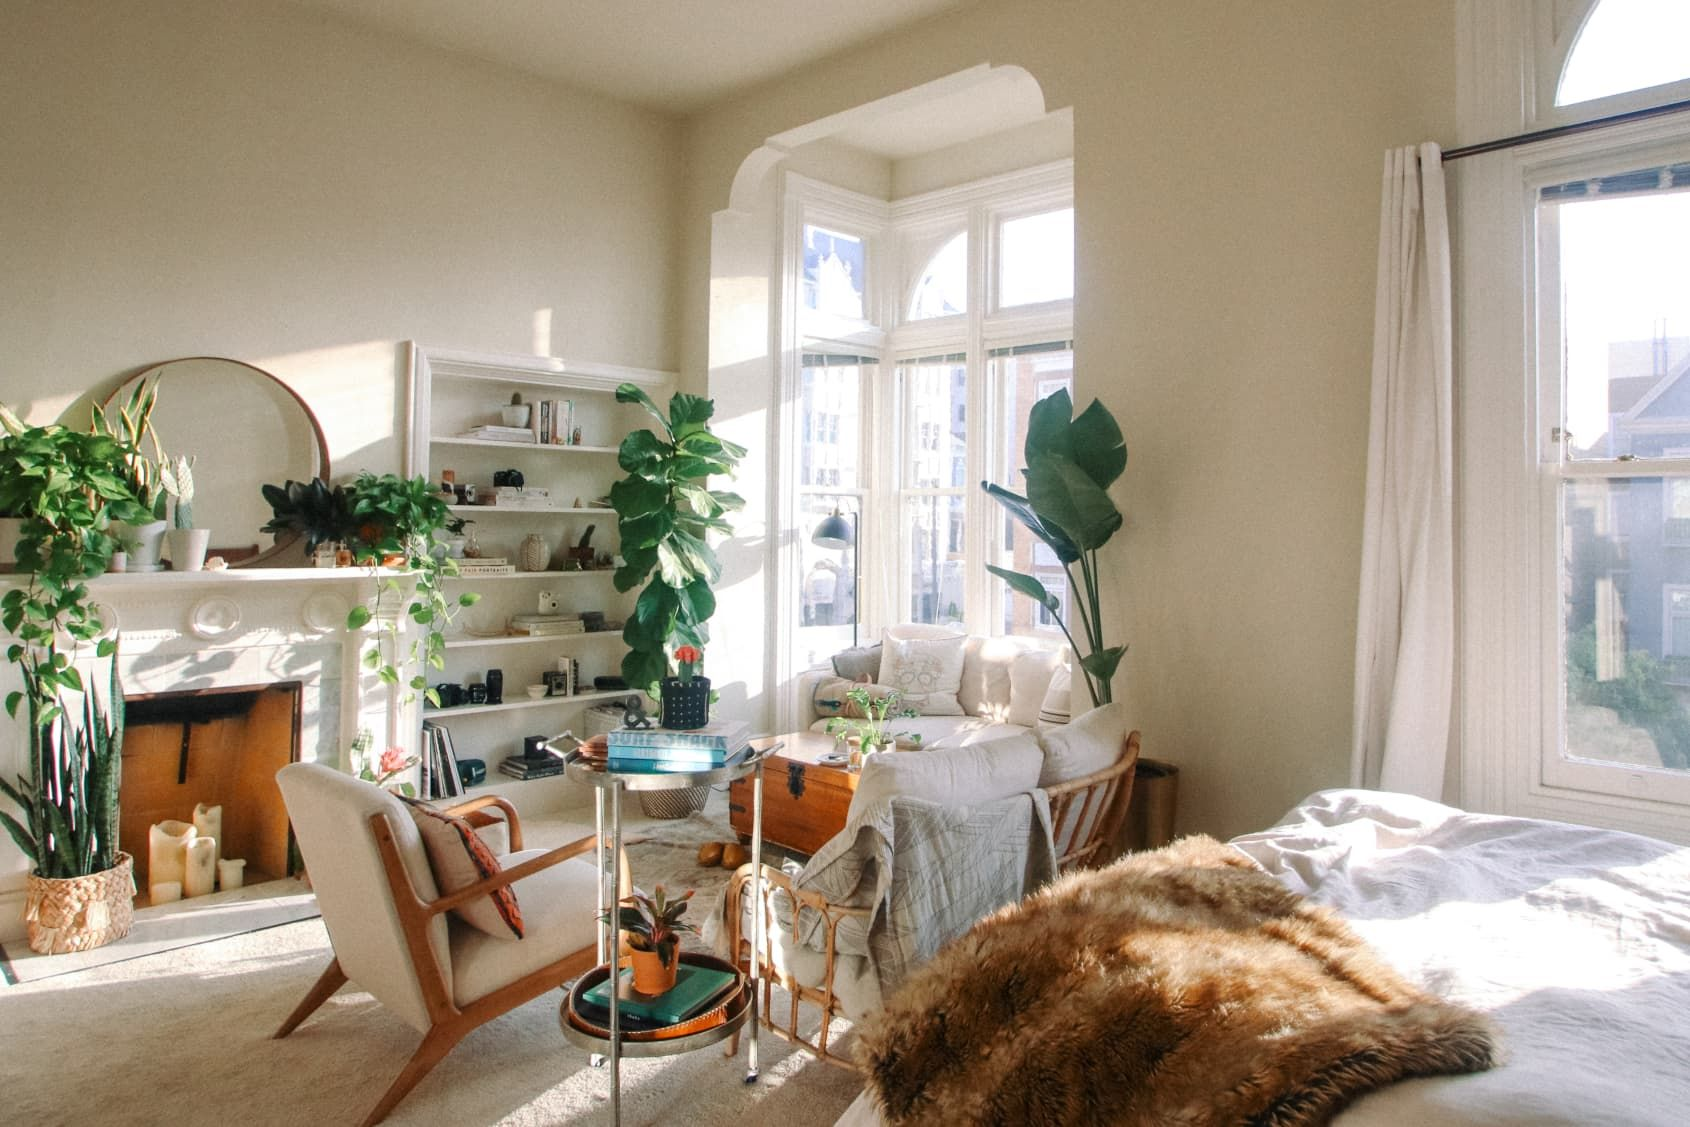 A 400SquareFoot, Sunny San Francisco Studio Filled with